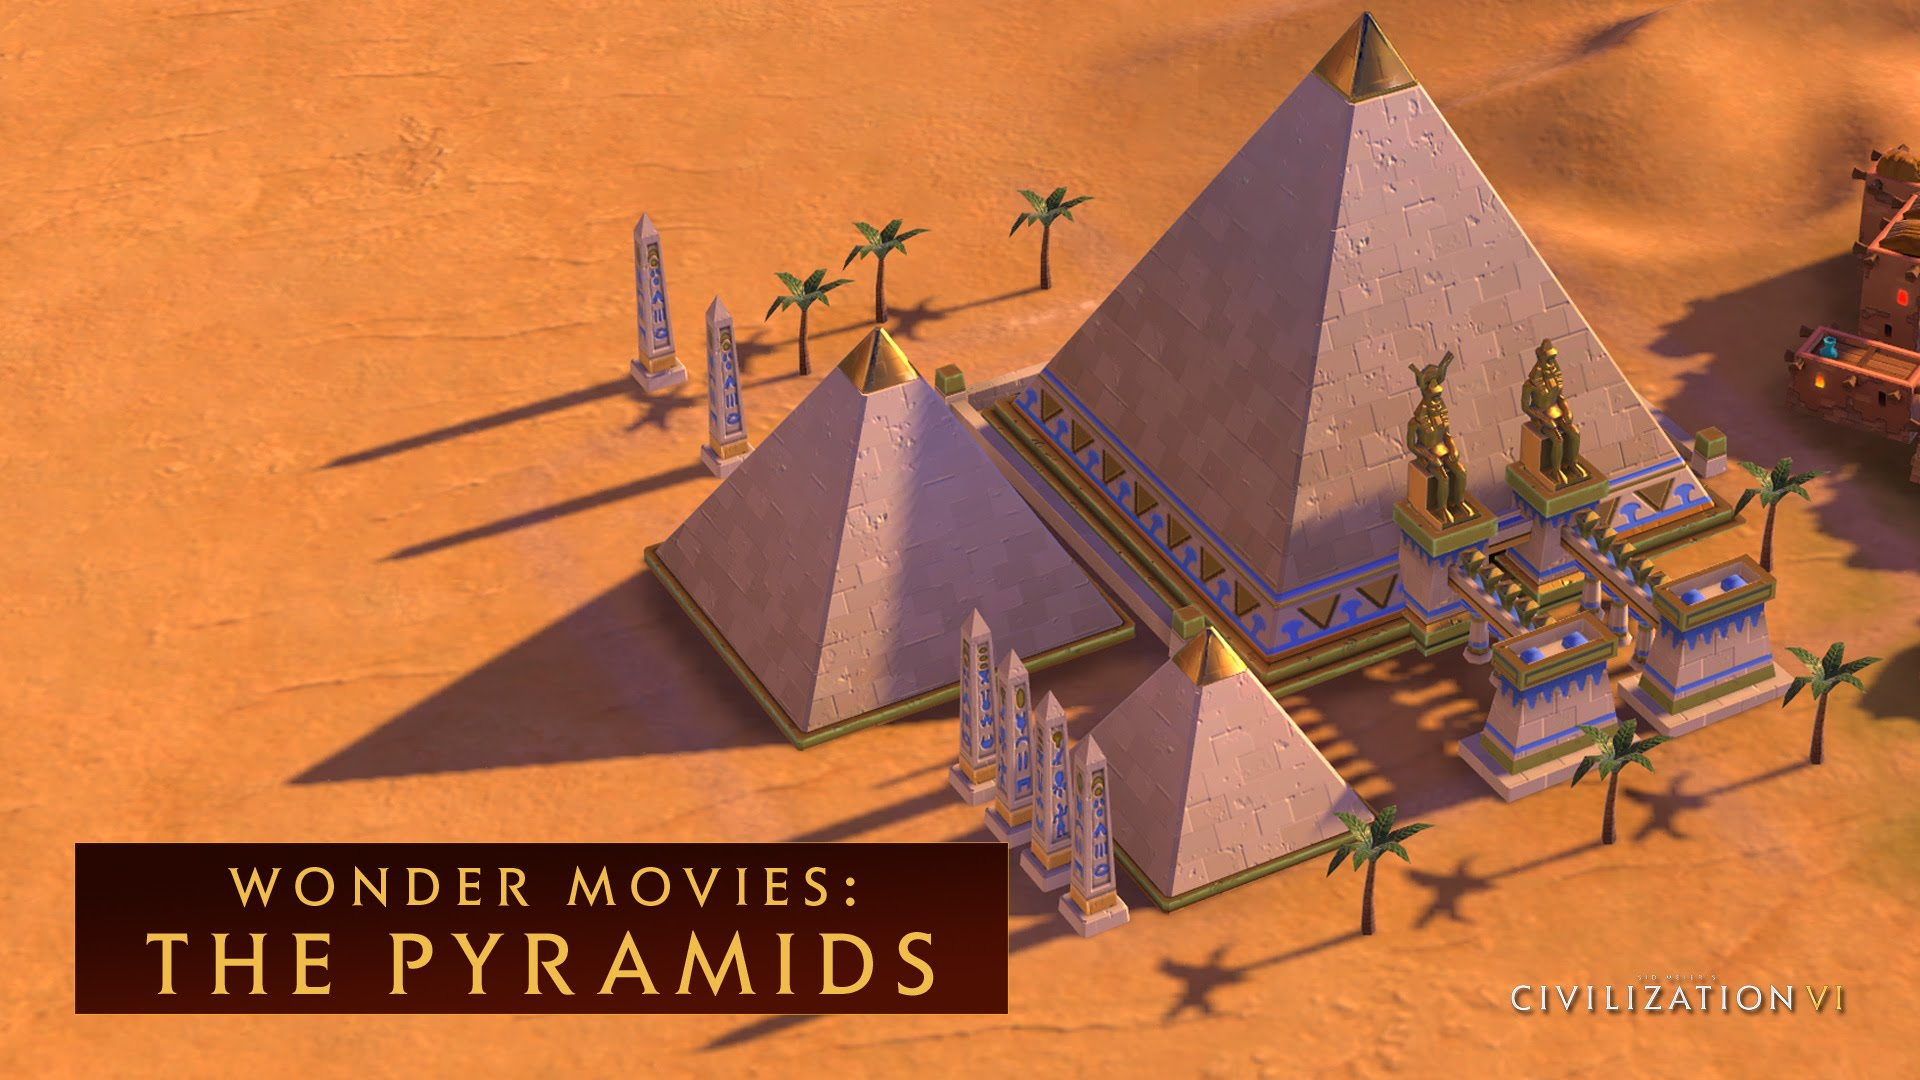 CIVILIZATION VI - The Pyramids (Wonder Movies)